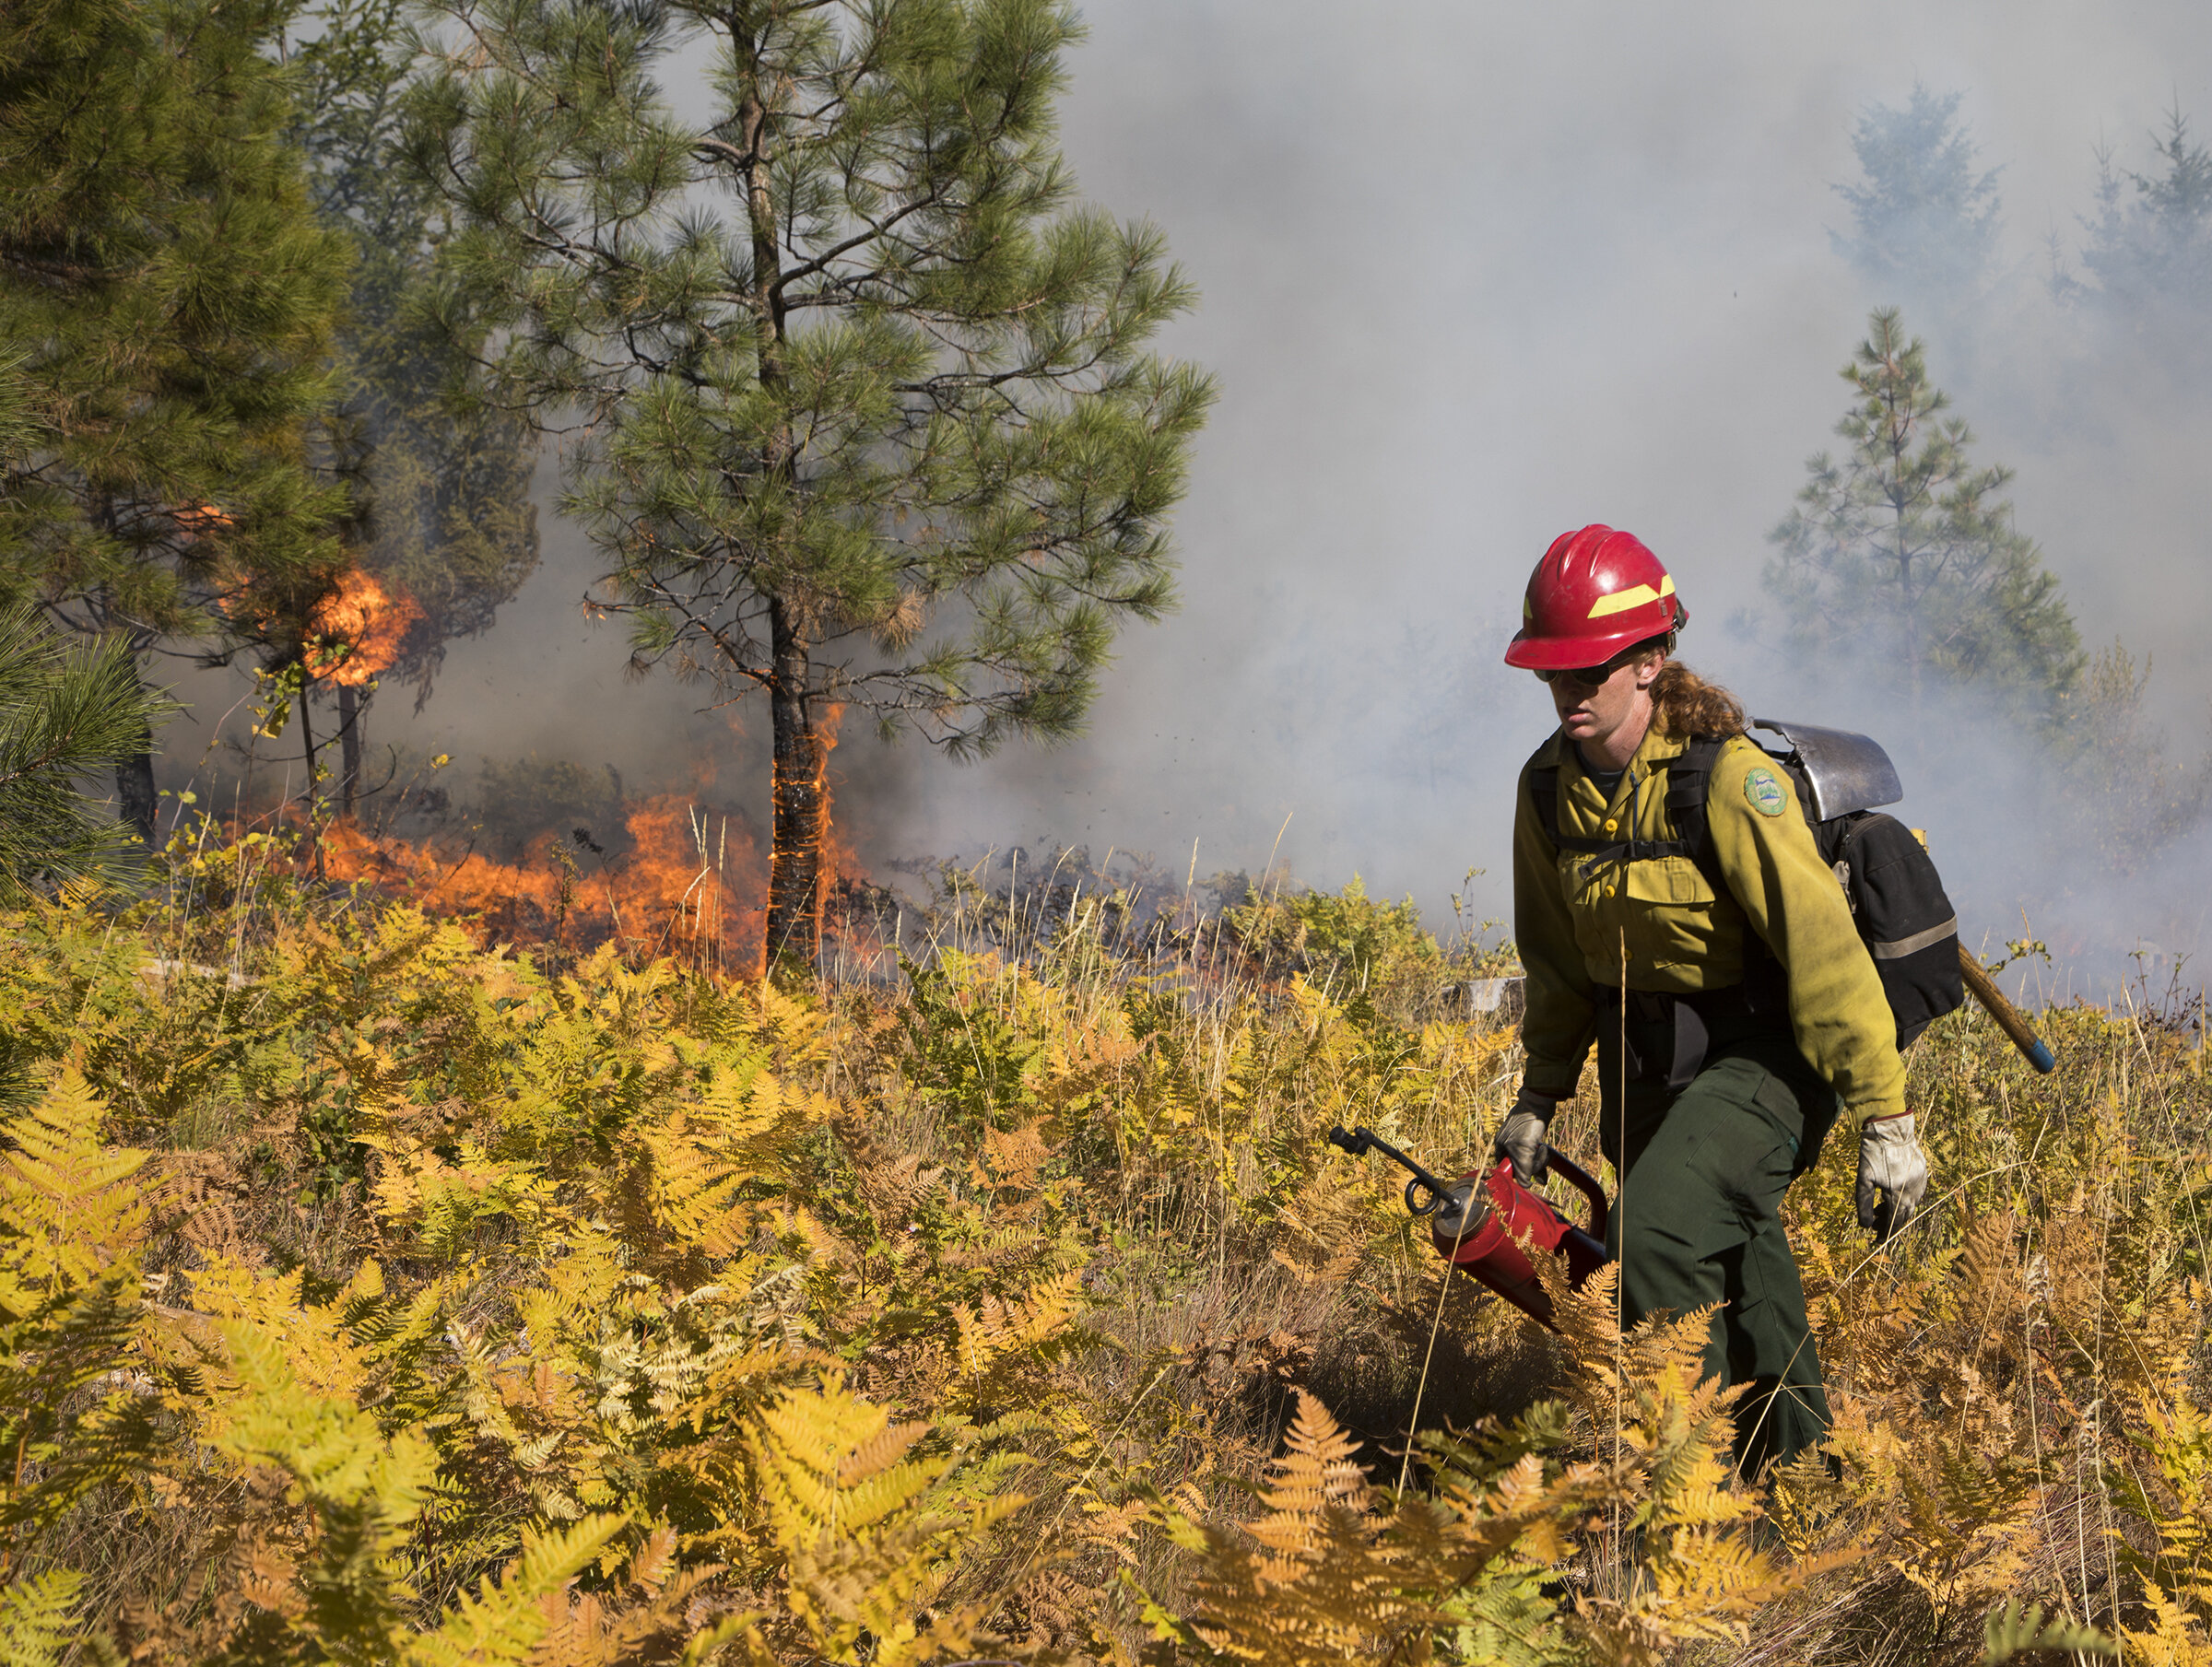 Kara Karboski, lead organizer for the training, coordinator for the Washington Prescribed Fire Council, on a controlled burn on private land near the town of Roslyn and adjacent to TNC land on Cle Elum Ridge in 2017. Photo © John Marshall.